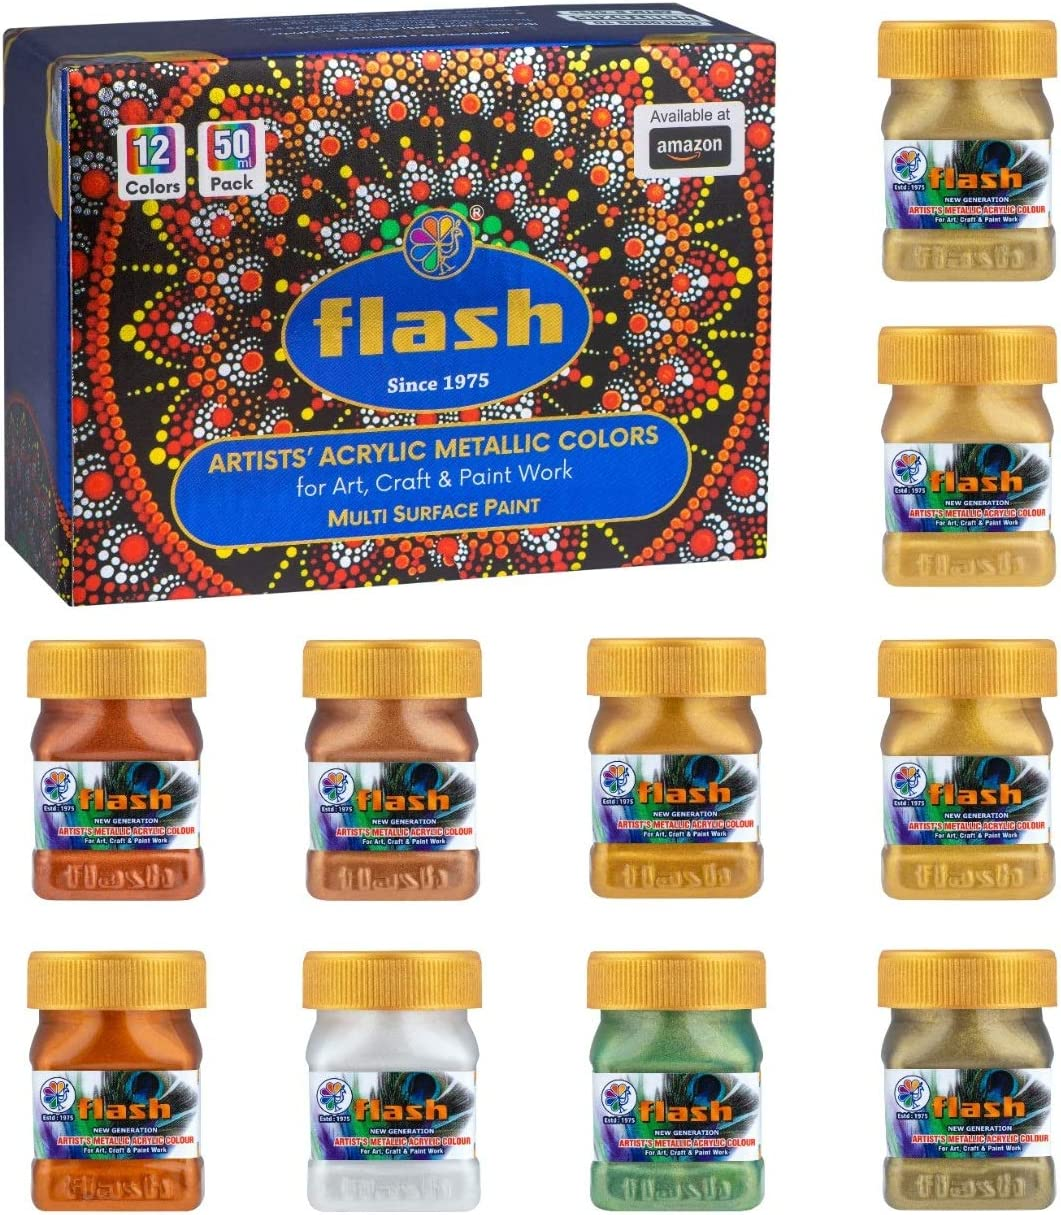 Flash Premium Iridescent Solid Metallic Acrylic Paint Set 12 Shades(50ml,1.7 oz), Highly Pigmented & Fade-Resistant, Non-Toxic, Multi-Surface Paint for Artists, Hobby Painters & Kids